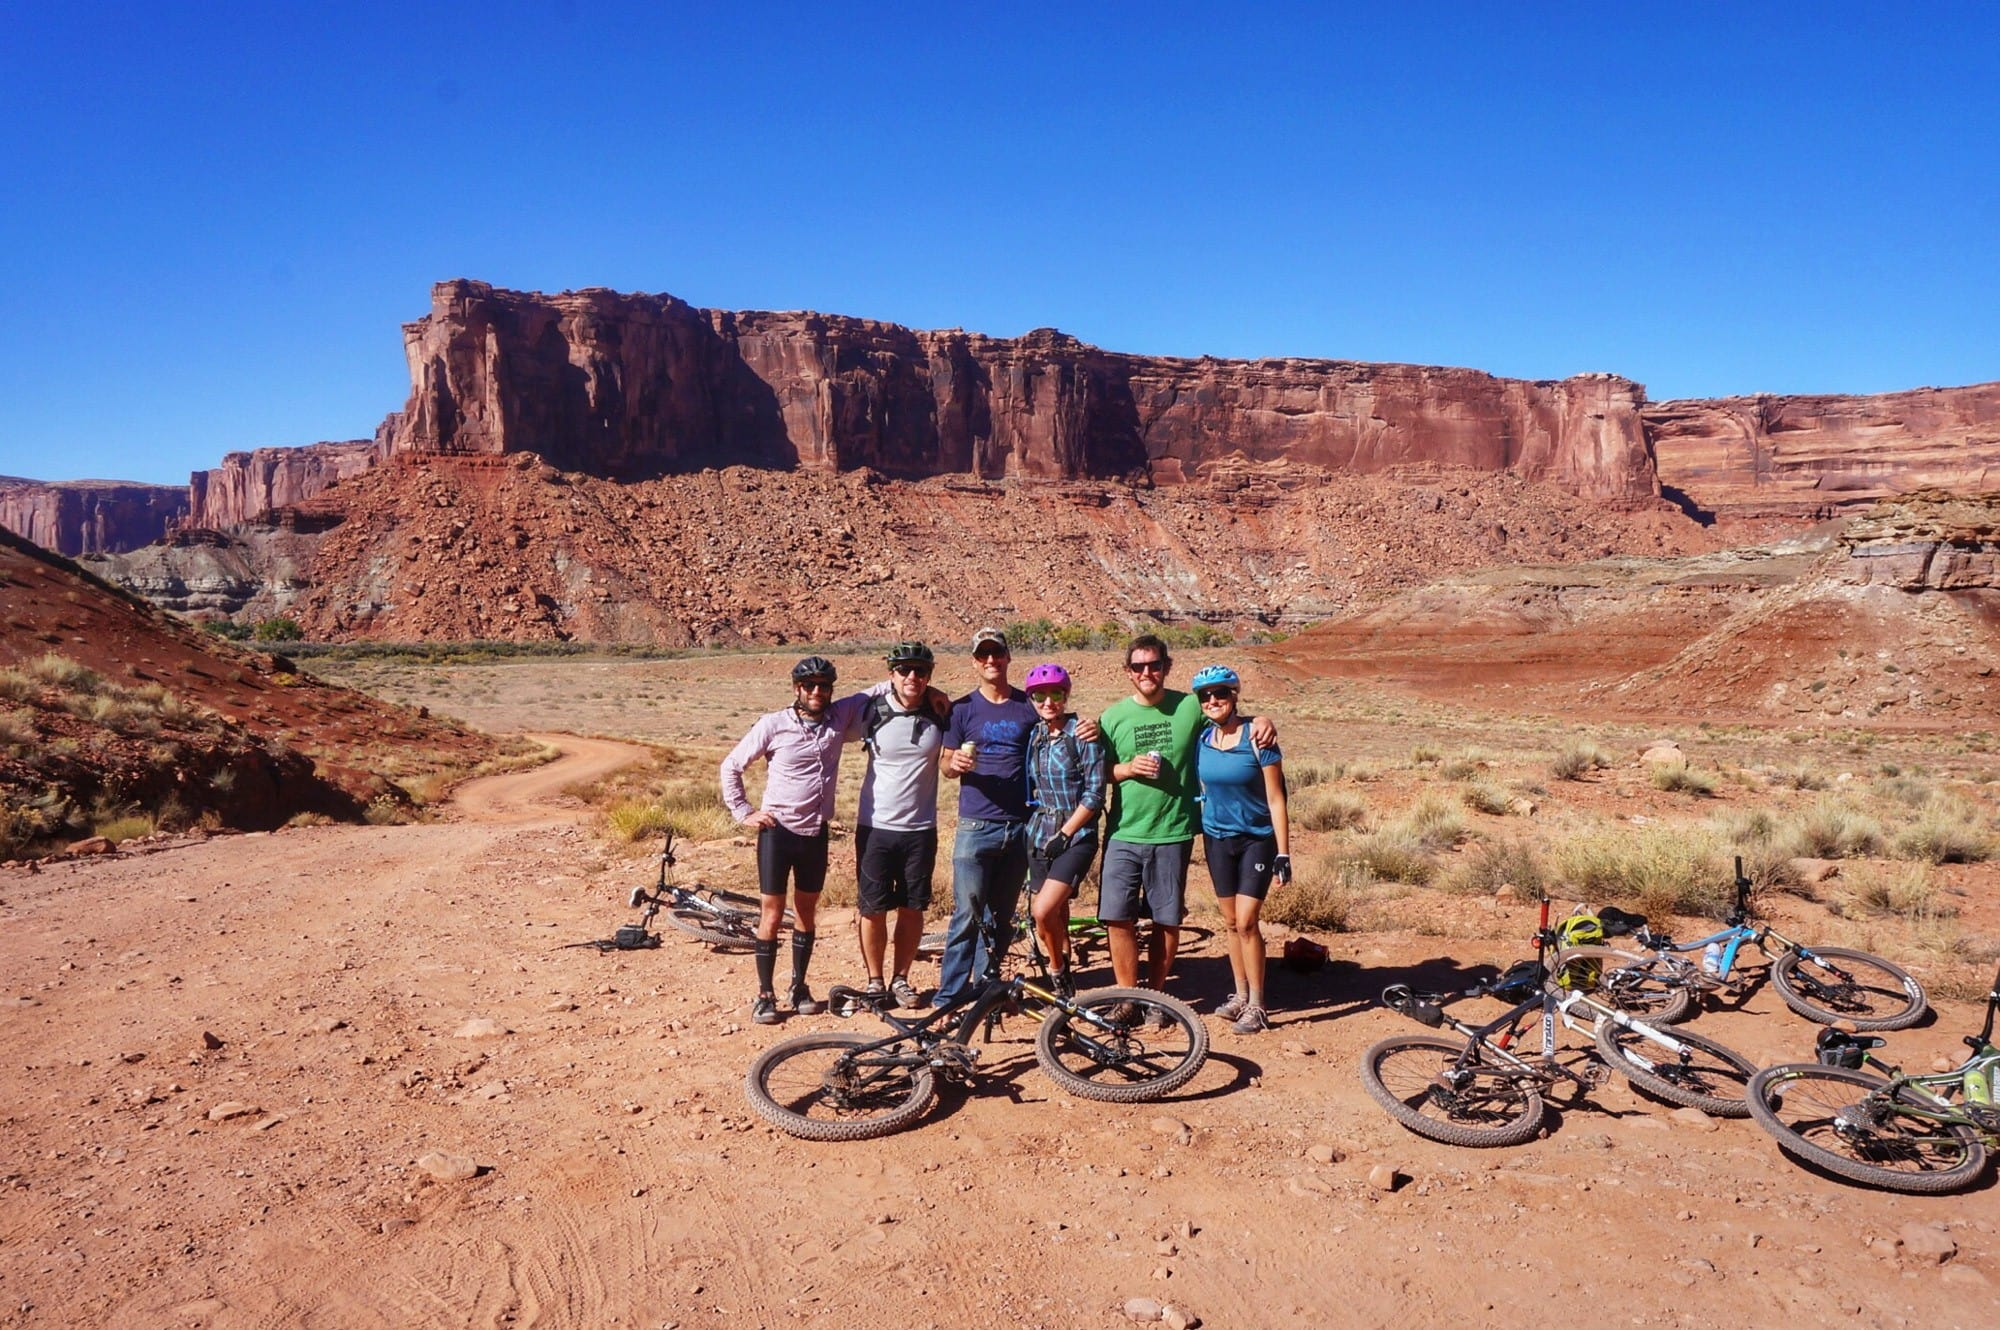 First Impressions of Mountain Biking